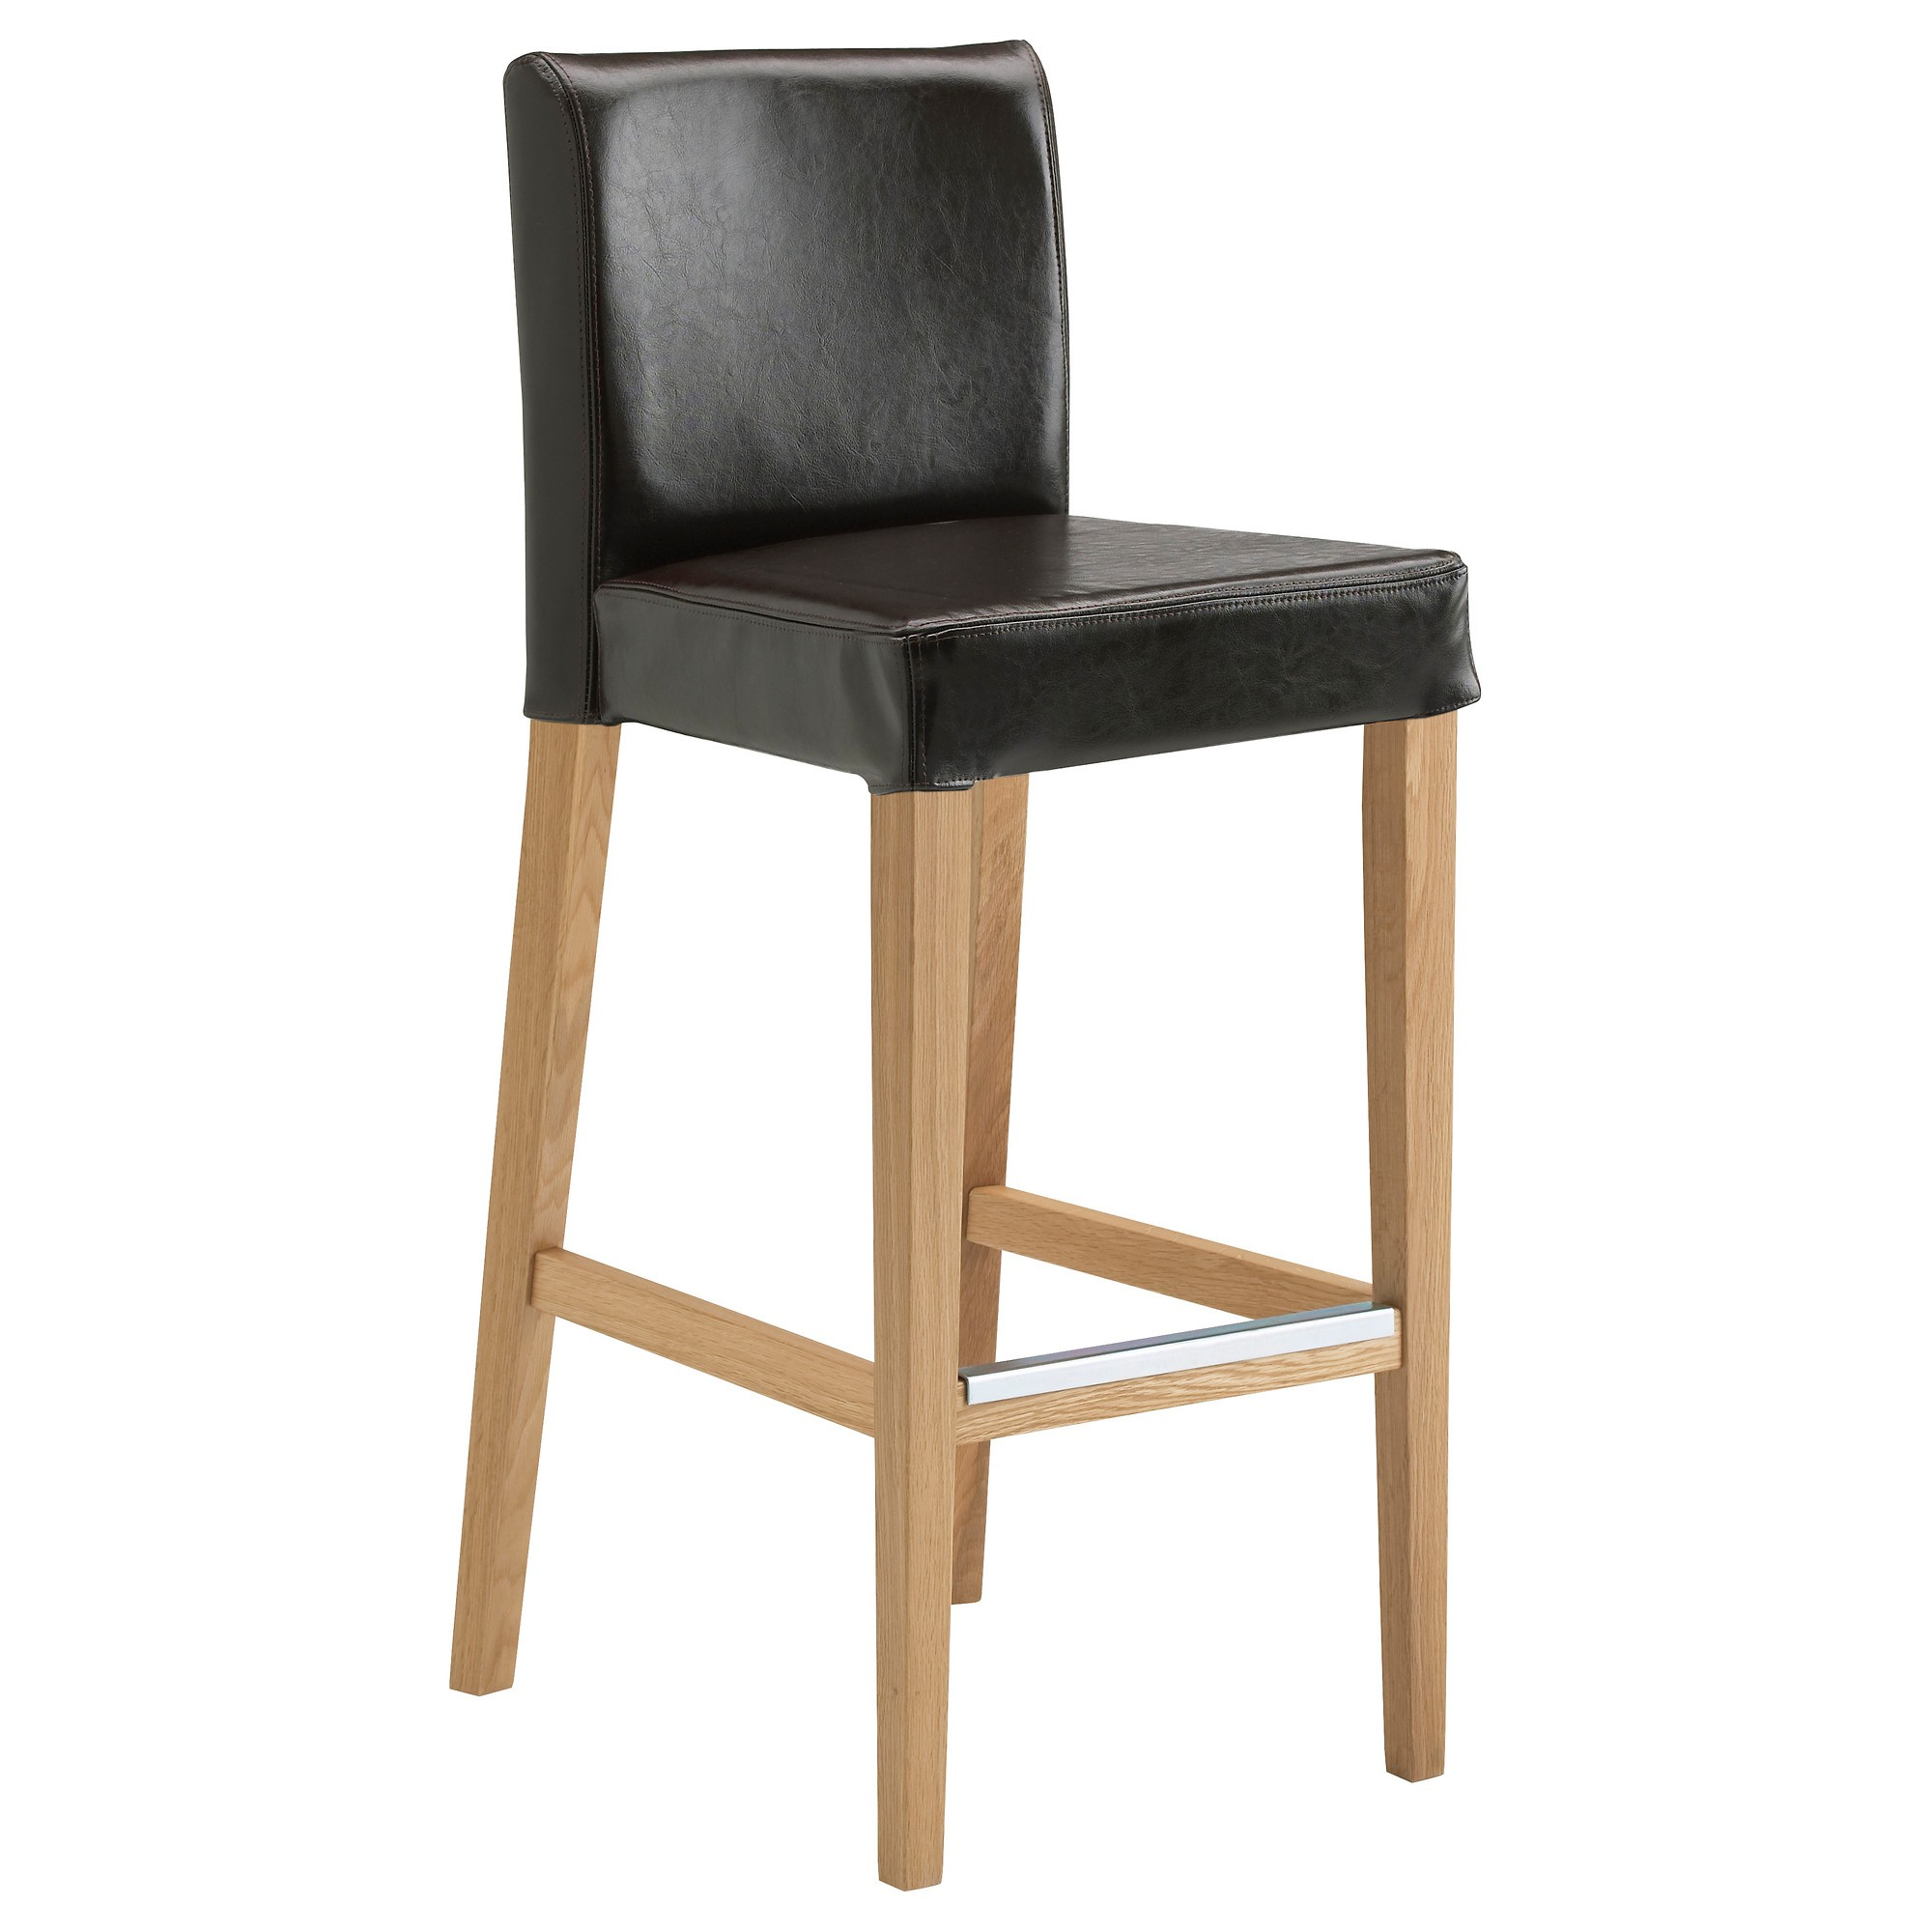 hauteur tabouret de bar ikea chaise id es de d coration de maison jgnxkr0bg1. Black Bedroom Furniture Sets. Home Design Ideas